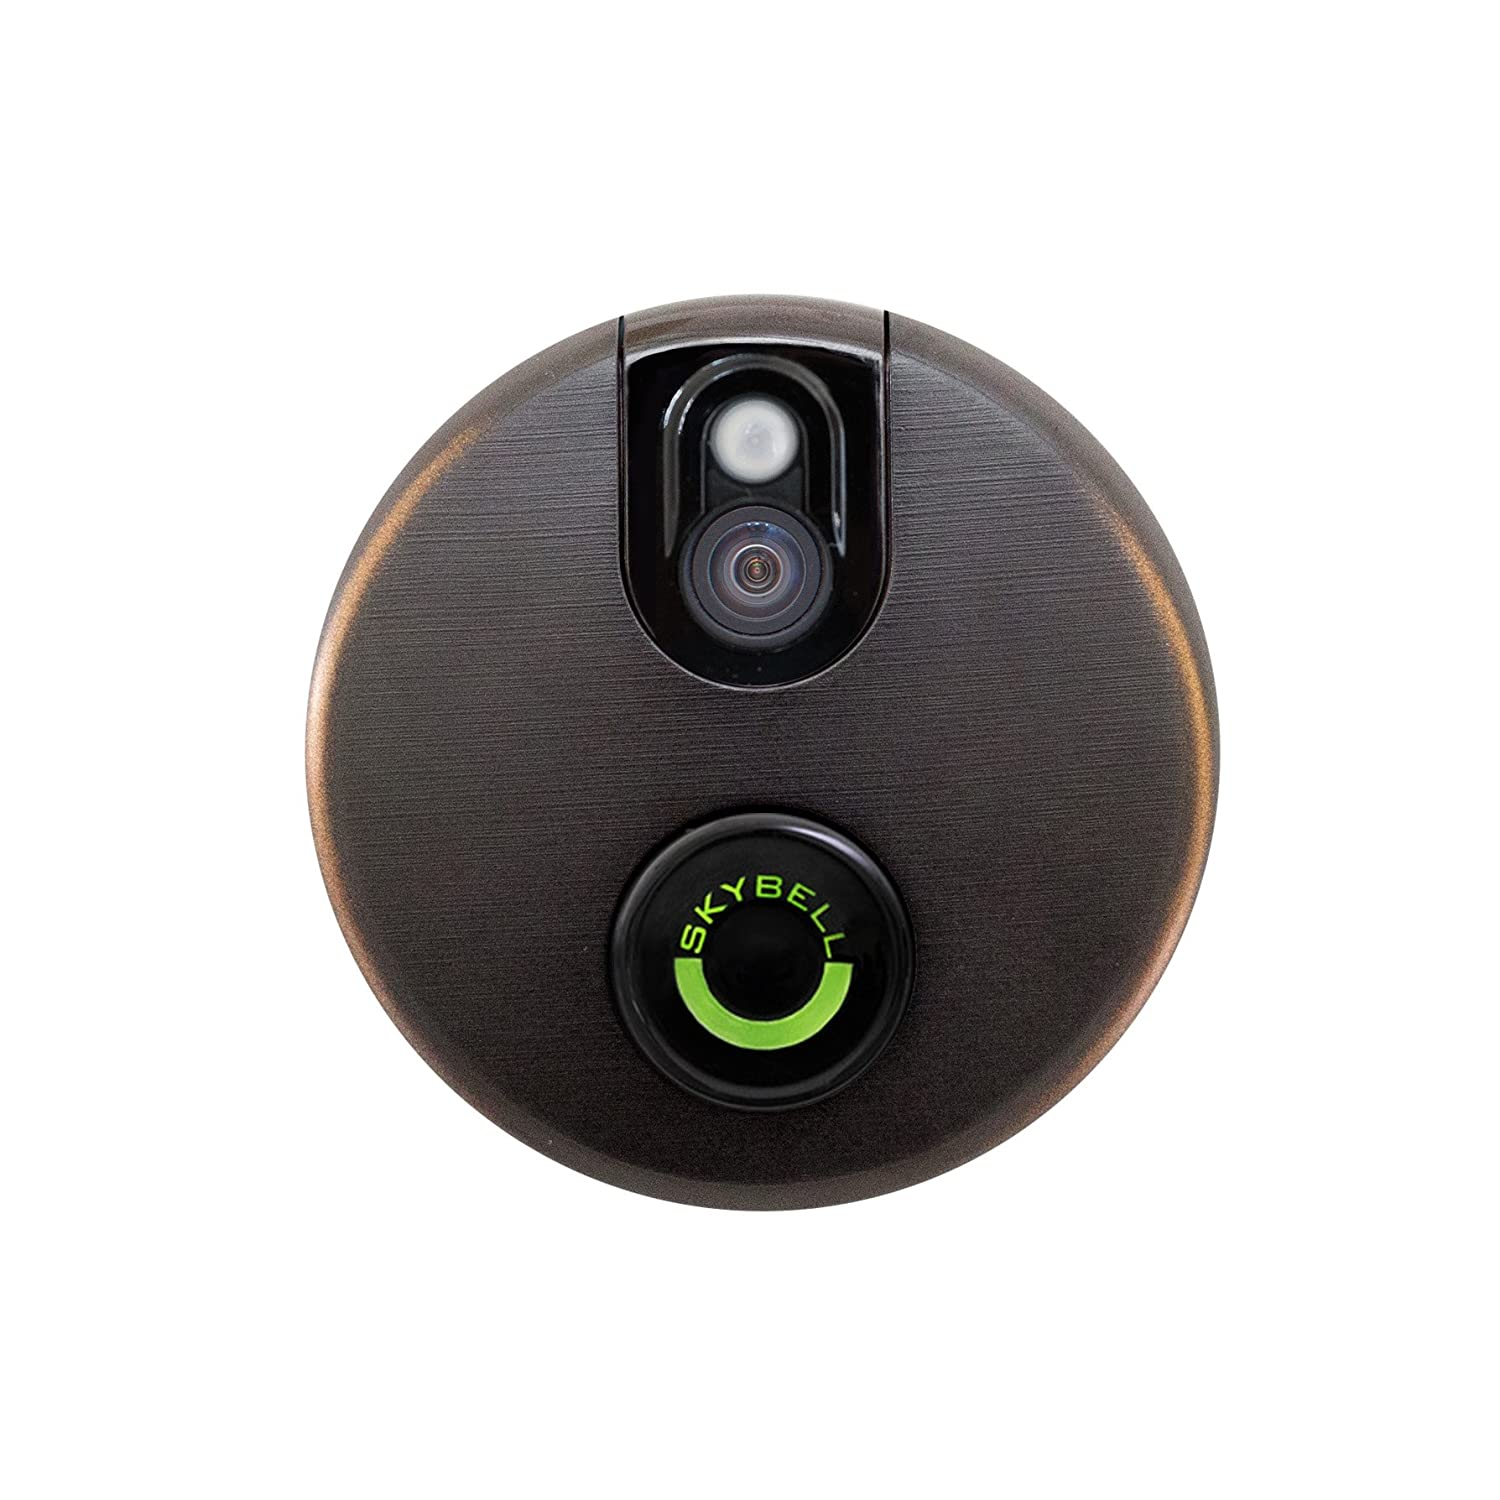 Skybell SB200W Wi-Fi Video Doorbell Version 2.0 Bronze